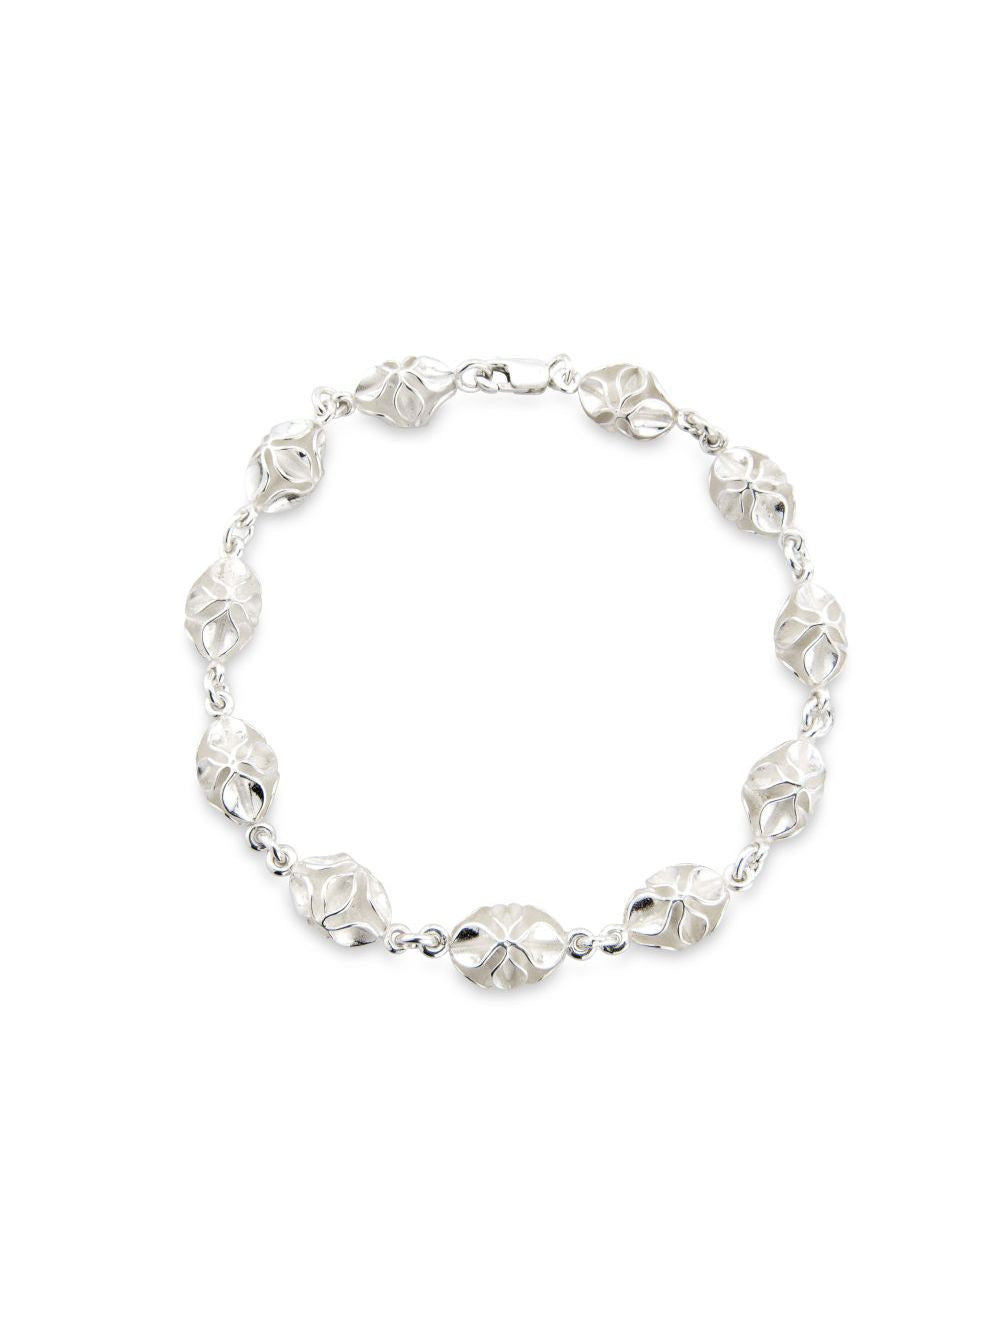 925 Silver Bracelet - Classic and Timeless Jewellery